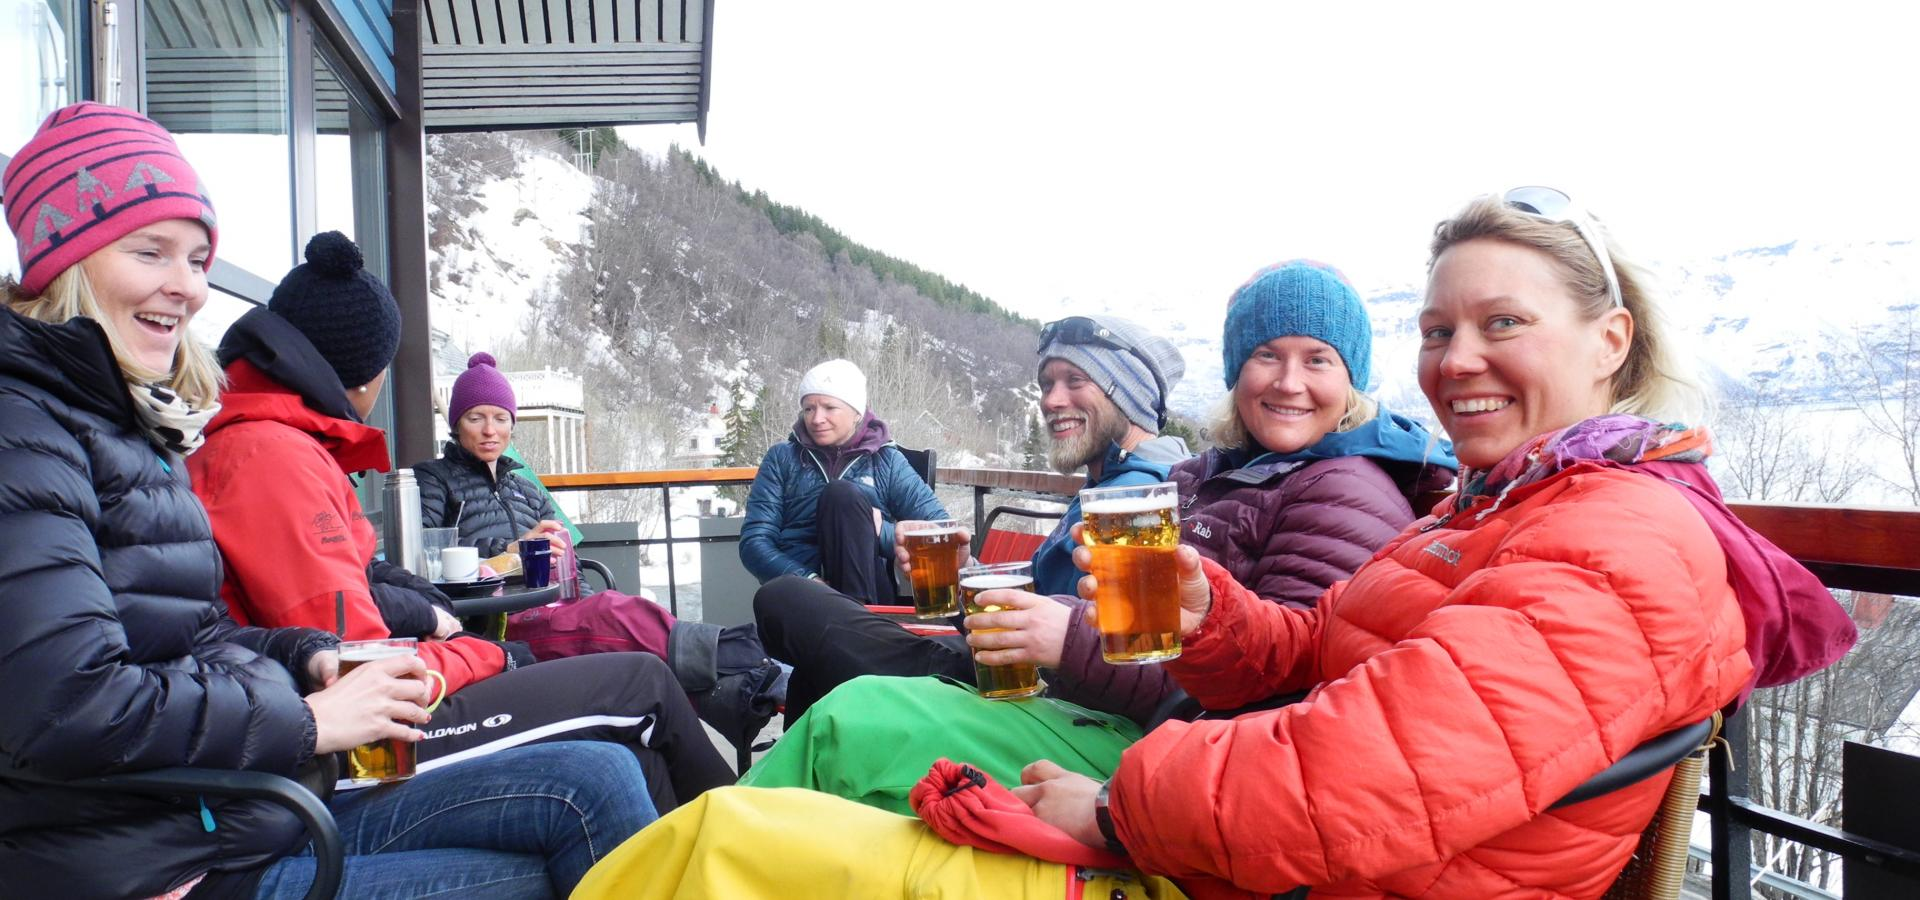 People enjoing afterski on the terrace of Magic Mountain Lodge